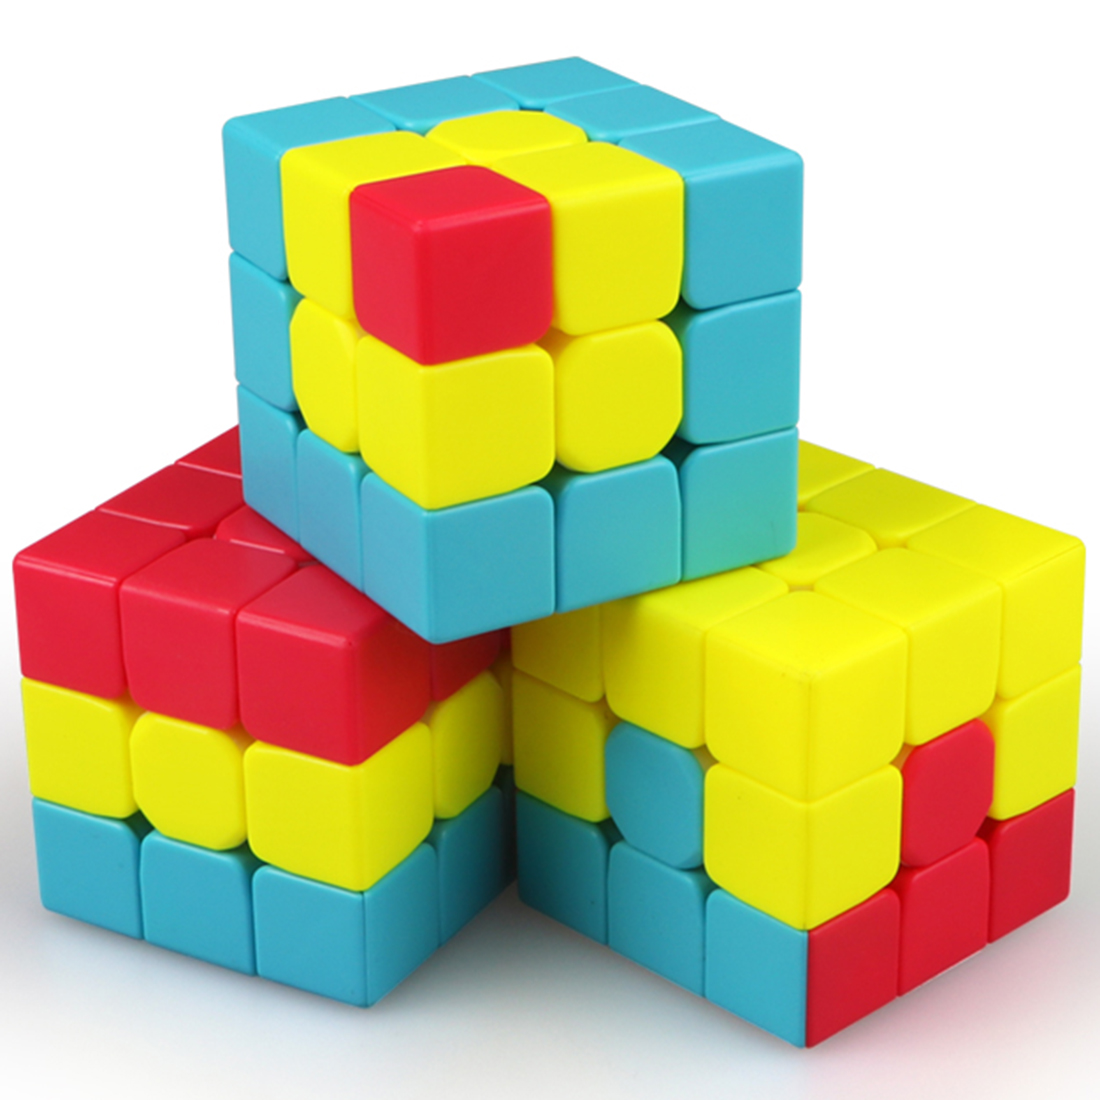 Surwish Qiyi Unicorn / Pudding /IVY /Bumpy /Sandwich /Little Red Hat Magic Cube Set Speed Cubes Puzzles Toys For Kids Gifts 2019